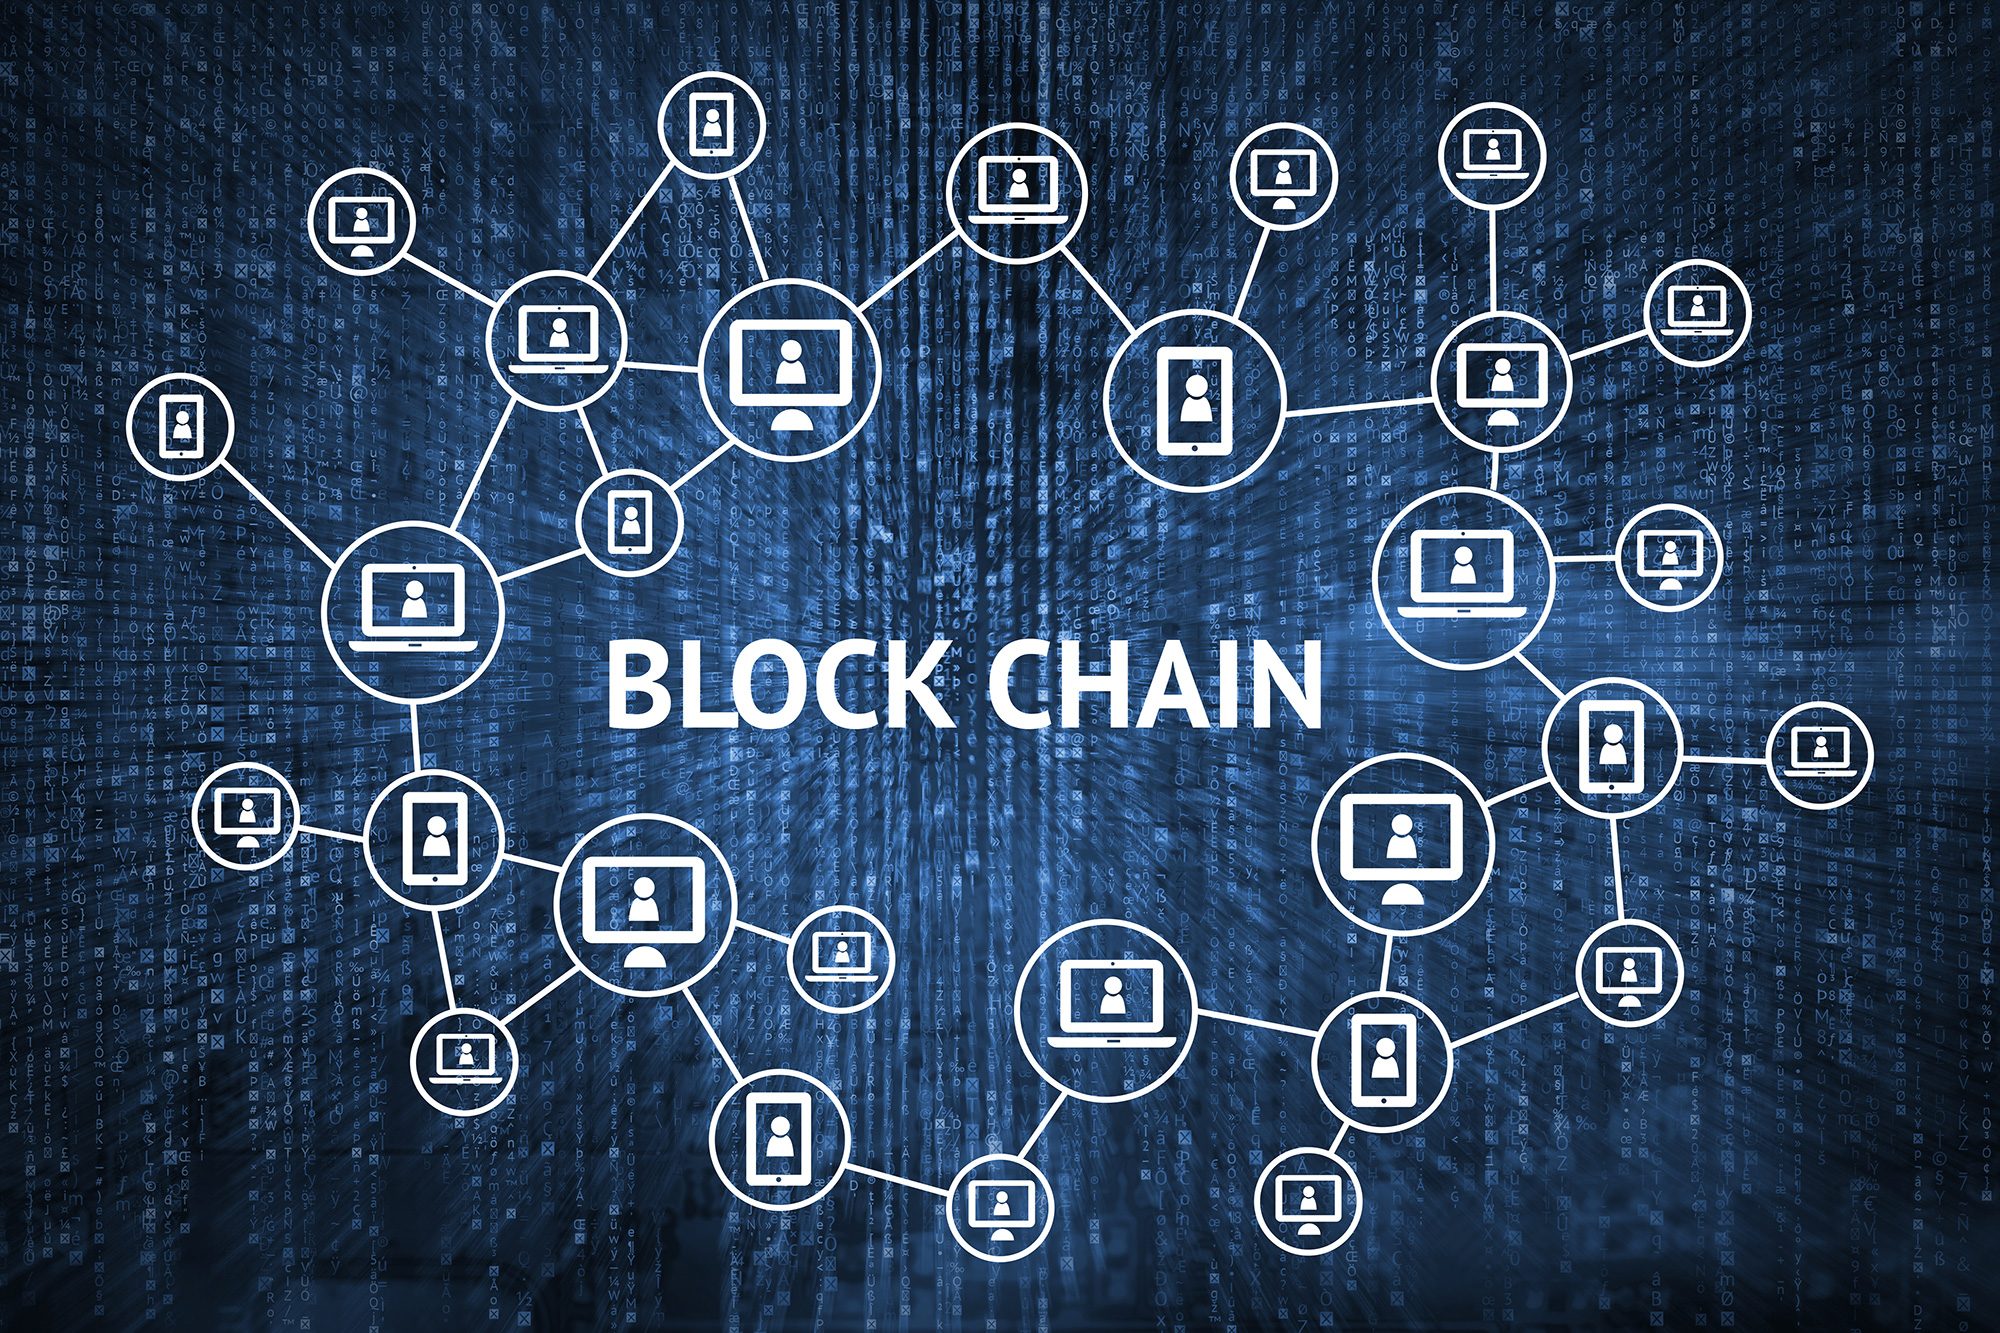 Isreali Startups/Academicians Poised to Lead the Way in Blockchain Innovation